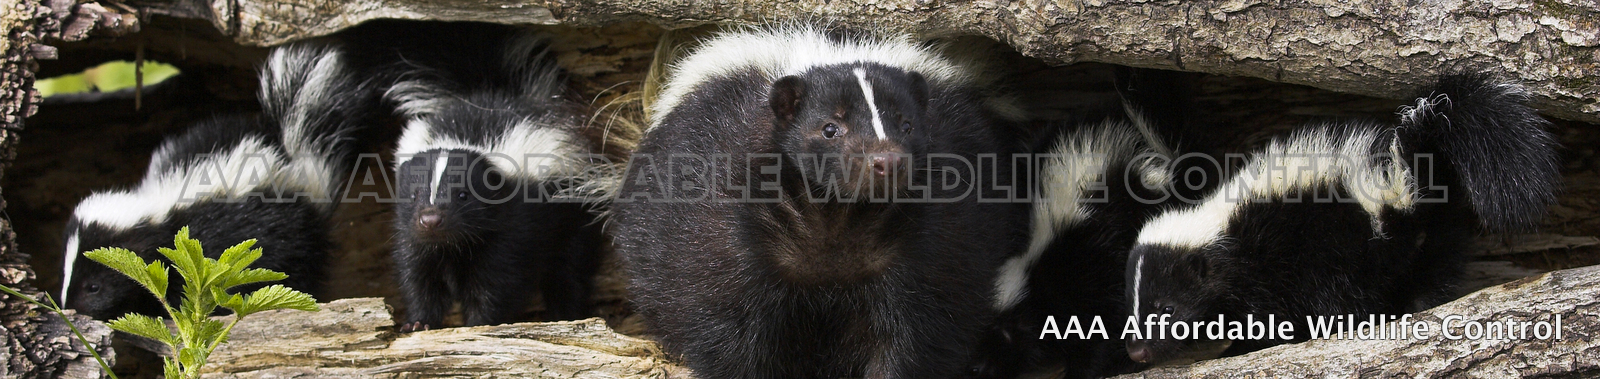 Skunk Removal Toronto - AAA Affordable Wildlife Control